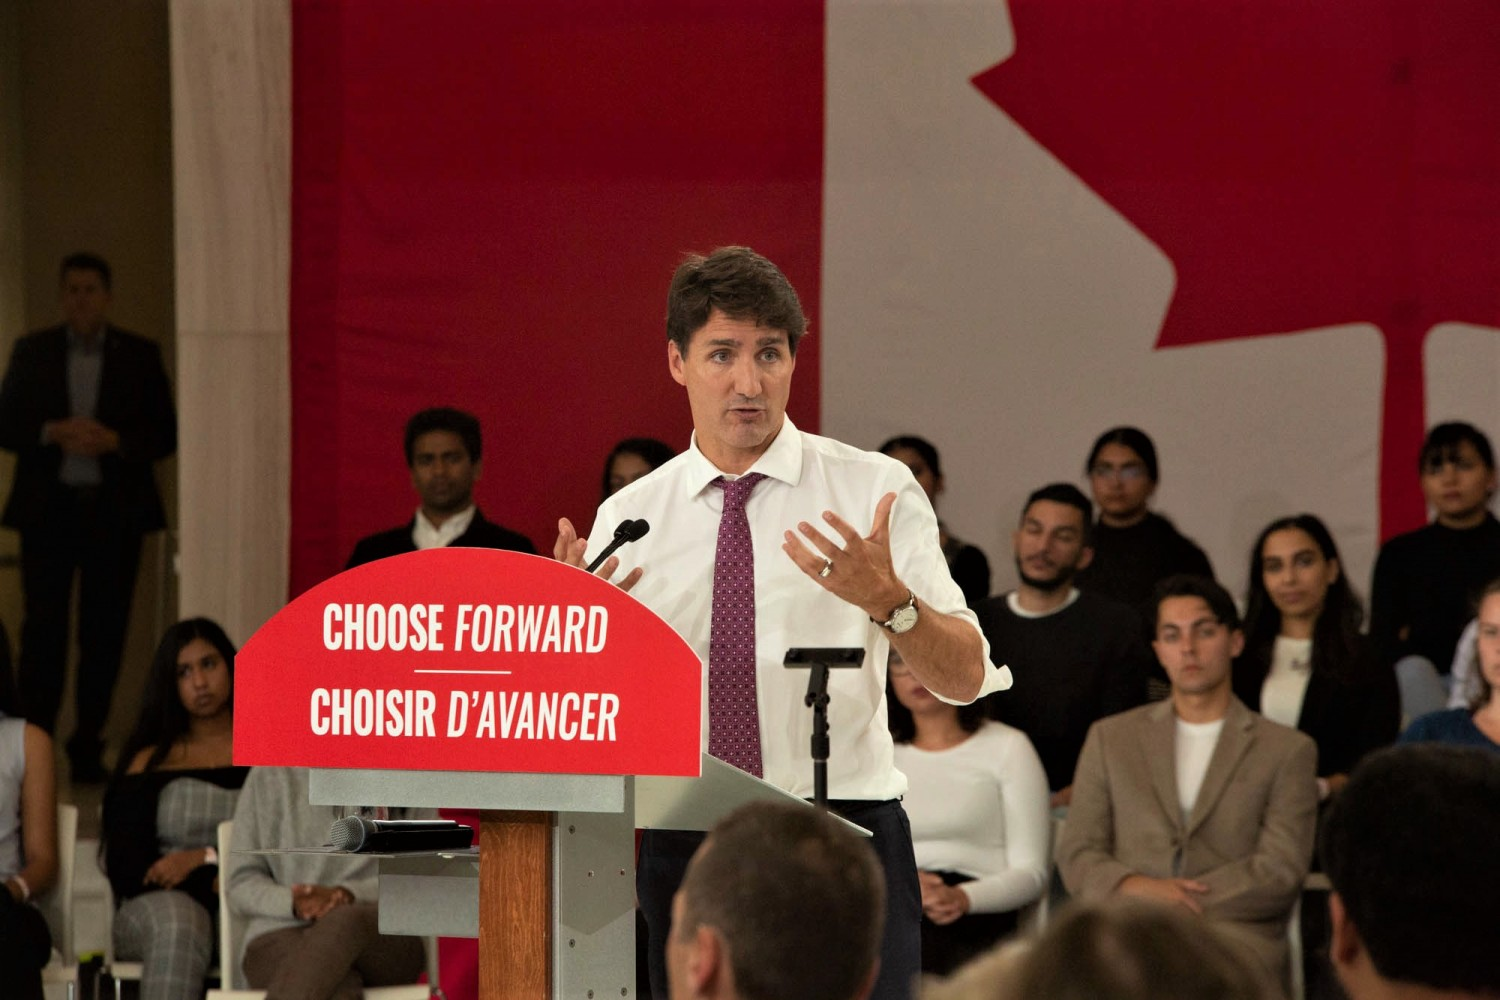 Trudeau offers no insight on local issues in Mississauga at UTM campaign event